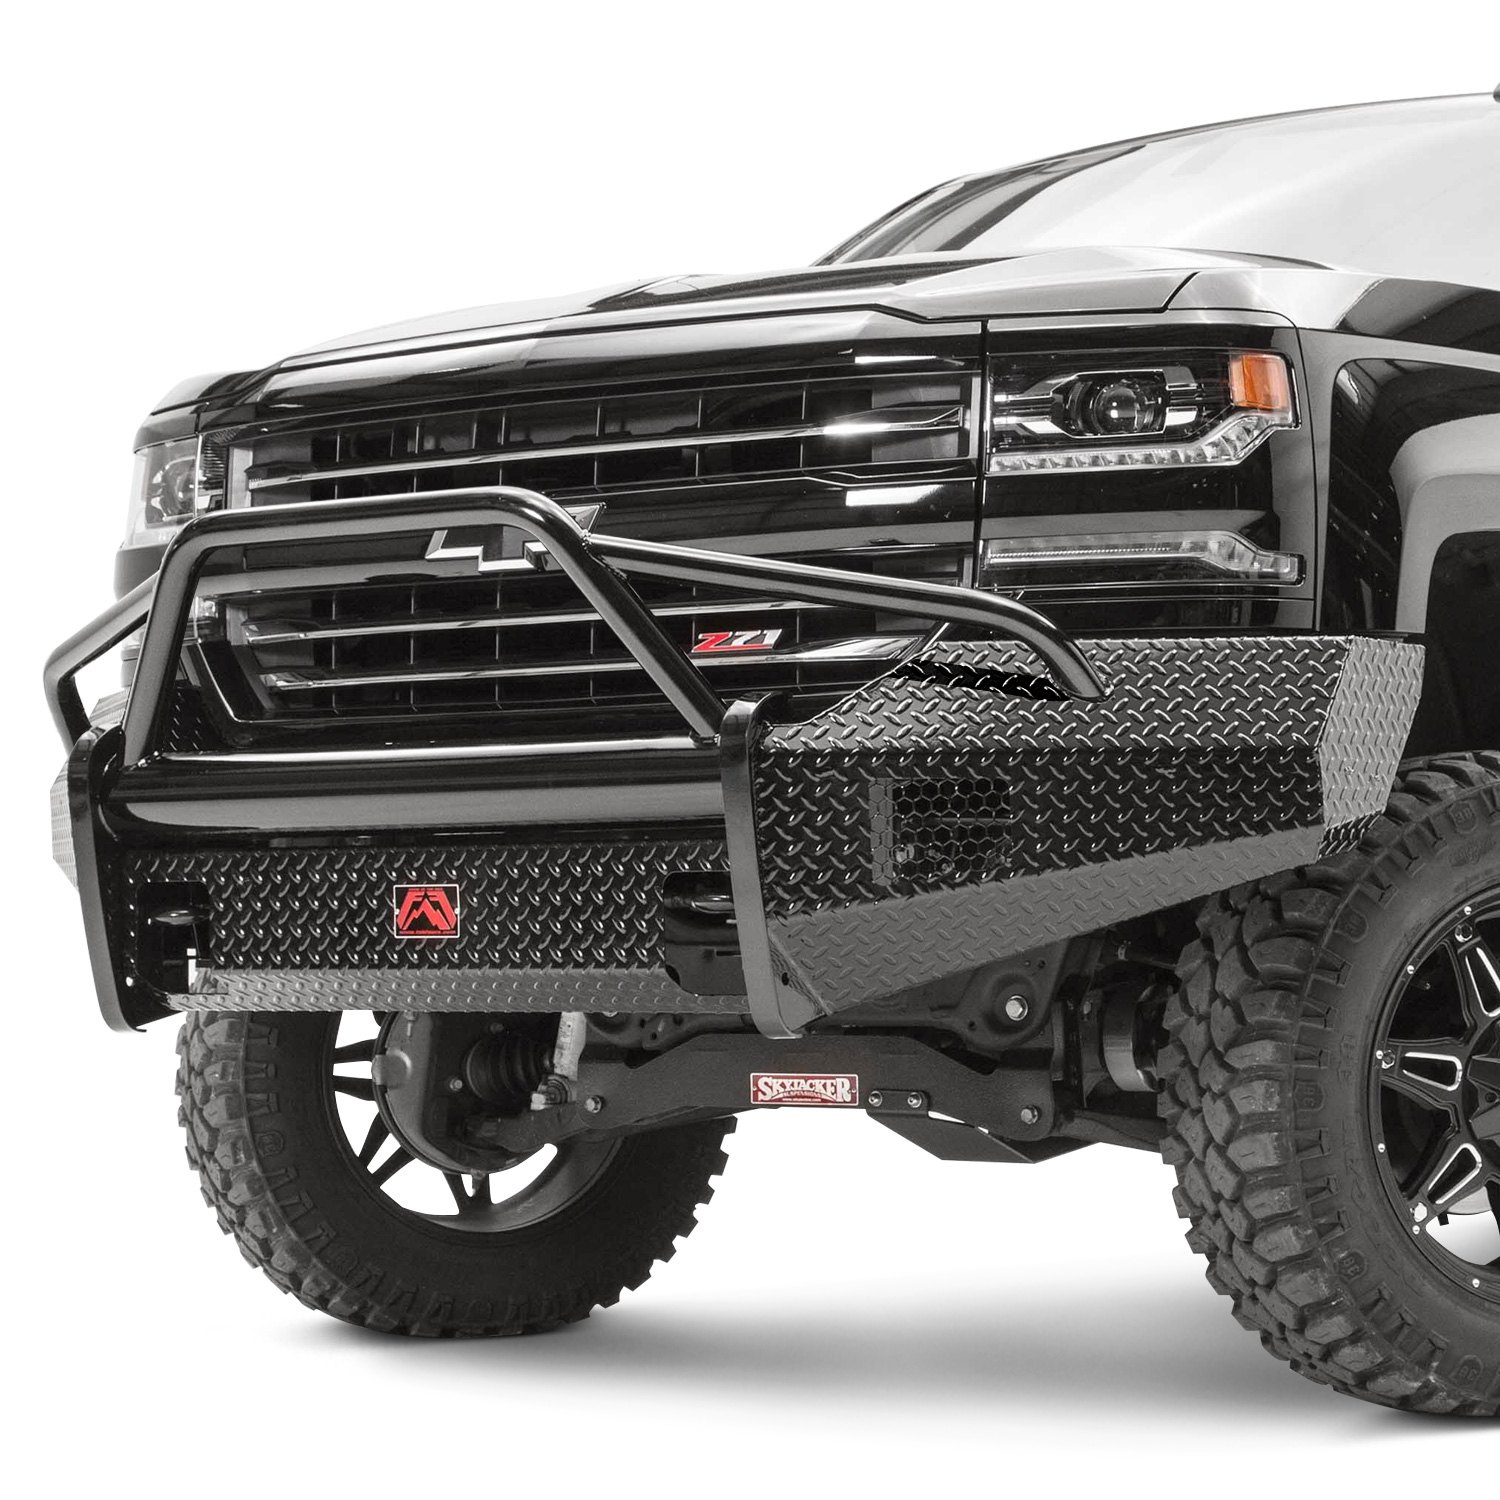 fab fours chevy silverado 2500 hd 2005 black steel full width front hd bumper with pre runner. Black Bedroom Furniture Sets. Home Design Ideas